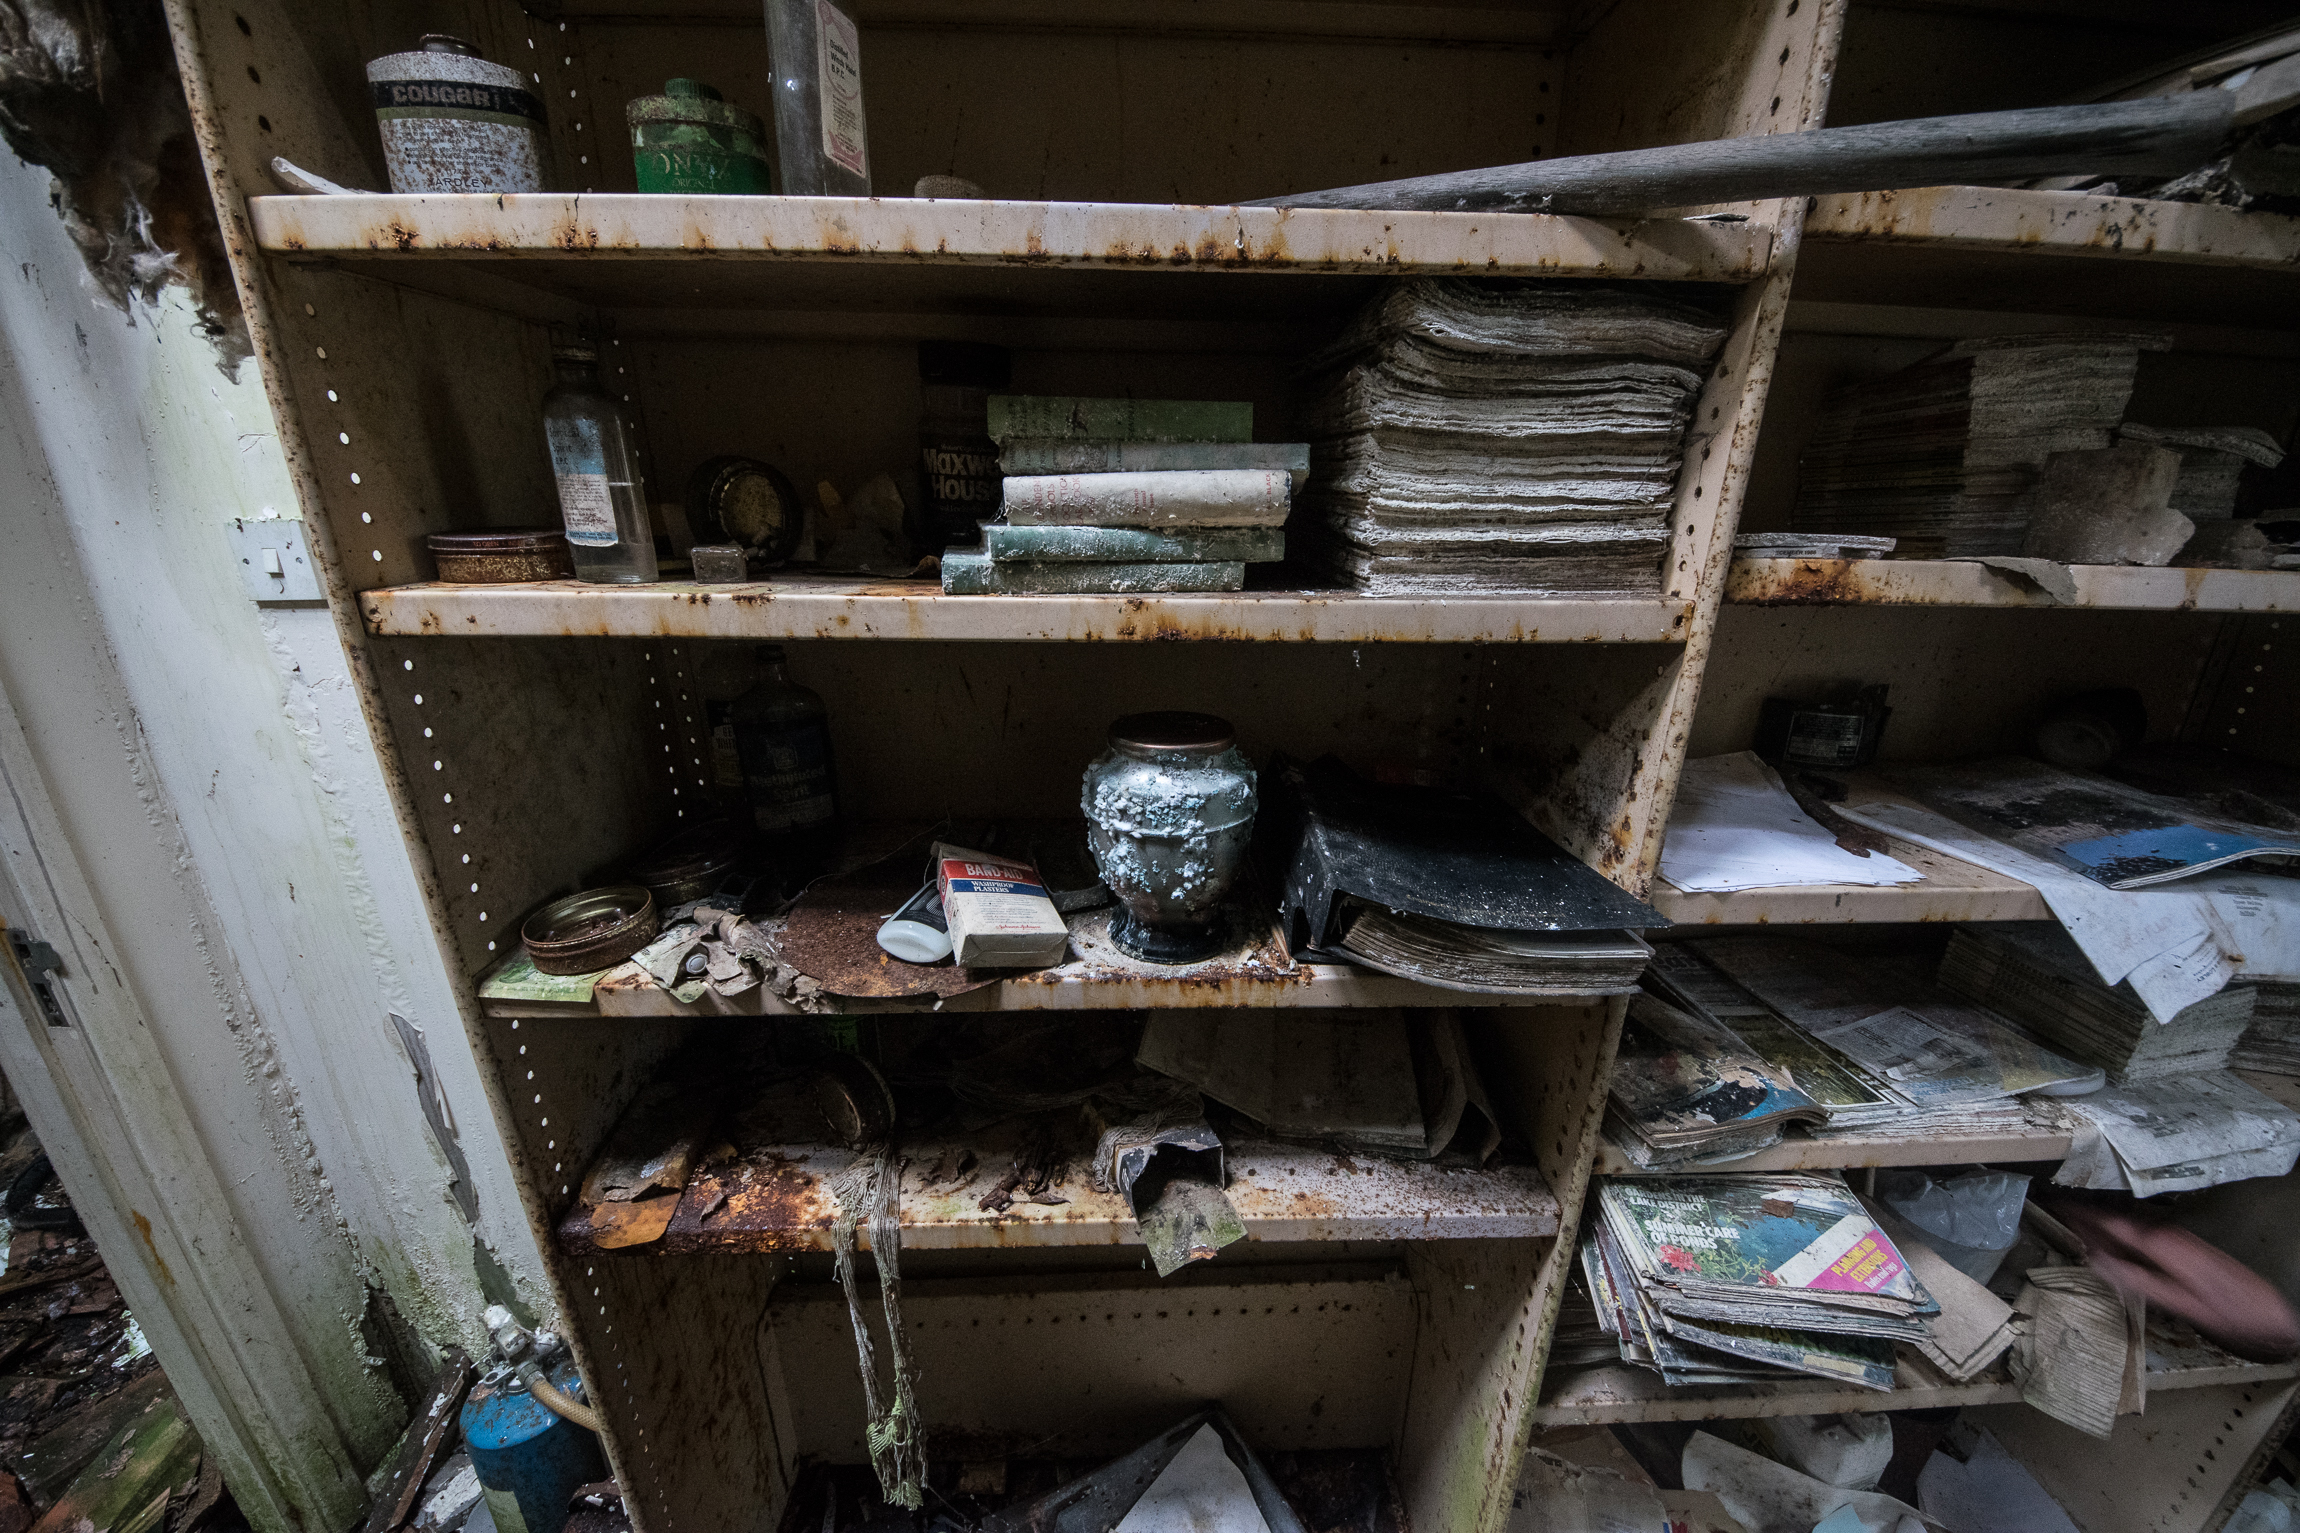 House Of The Cremation Ashes - This was an interesting little bungalow.First I came across the old false teeth of the owner and then discovered his ashy remains inside an urn left casually on a shelf amongst decaying books.So many personal belonging just left to rot in this one. Lovely to photograph